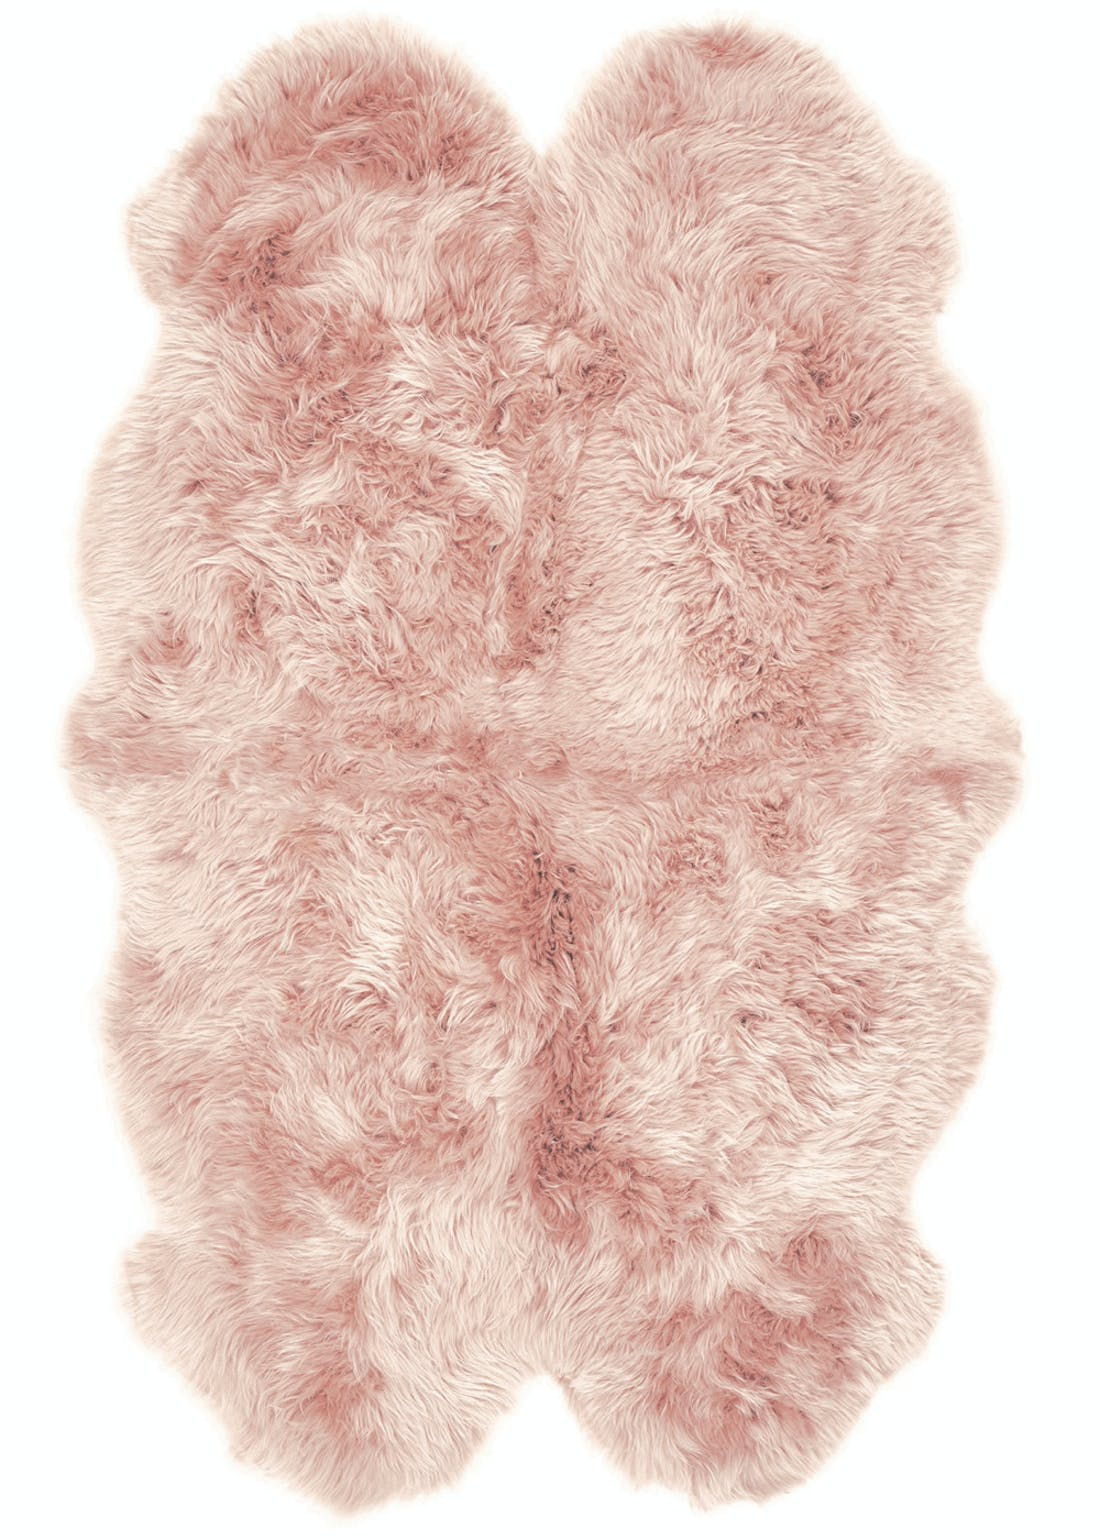 Origins Rose Genuine Sheepskin Adobe Rug (160cm x 105cm)